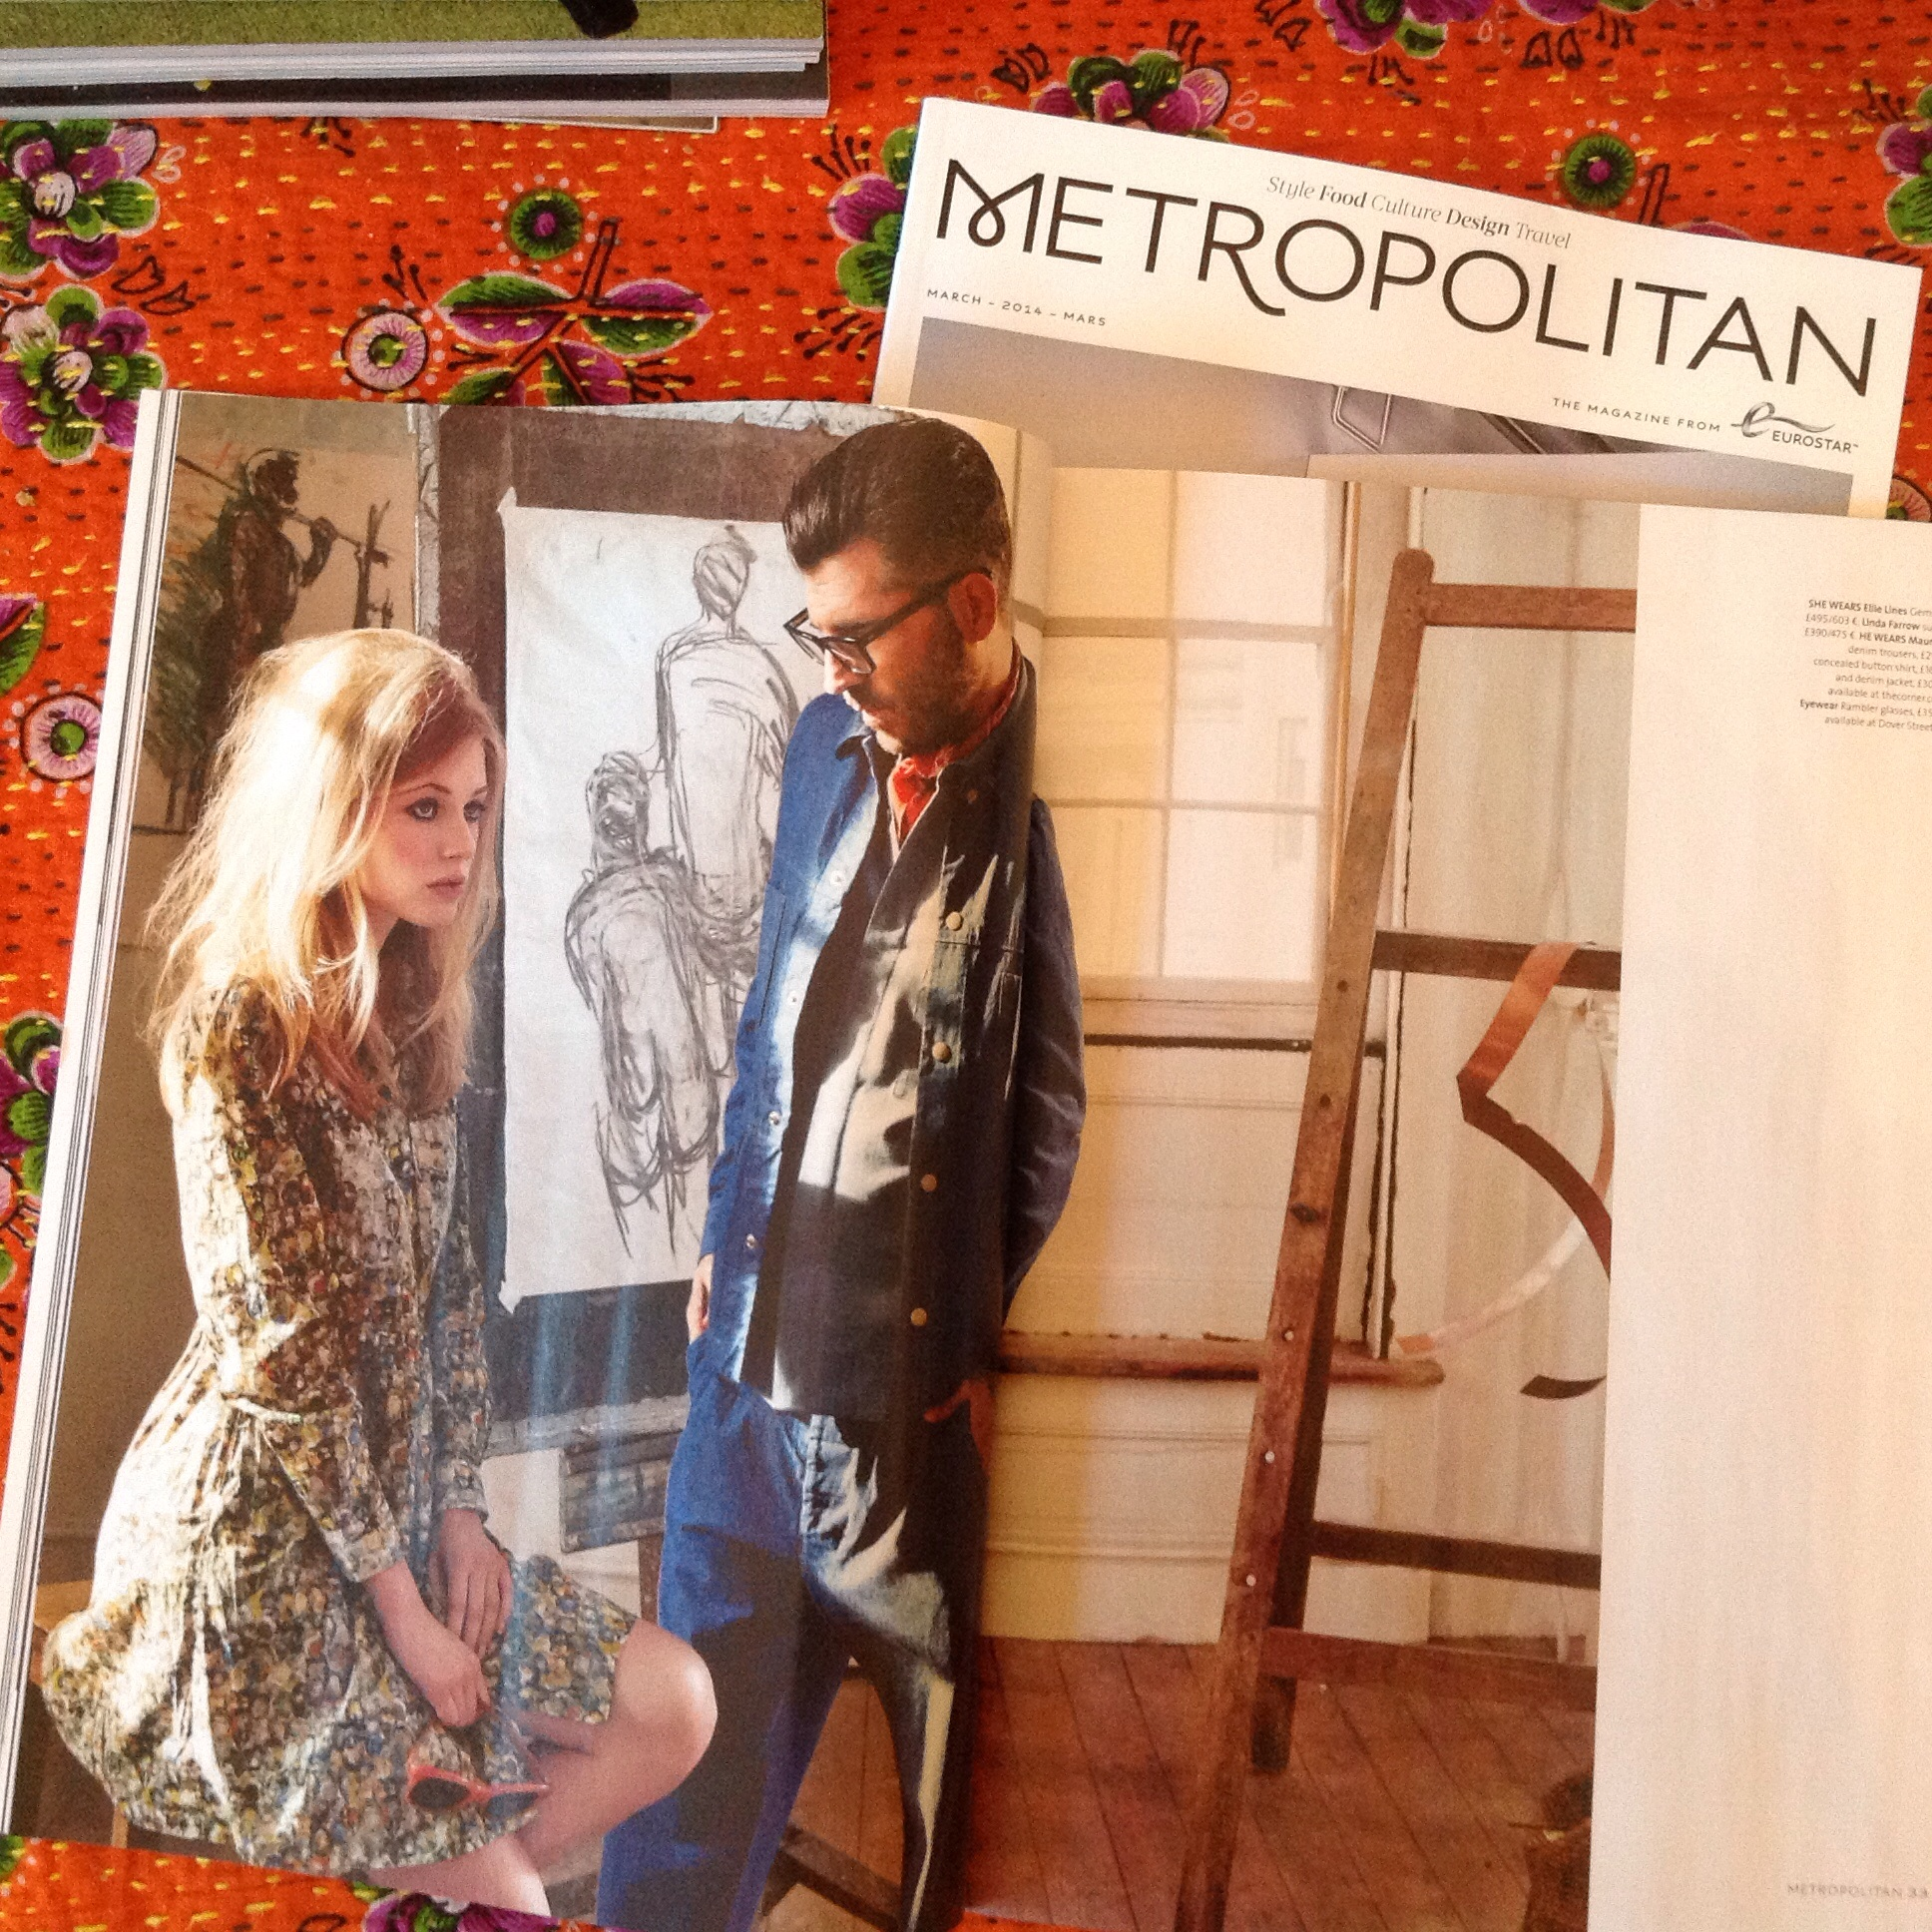 Gemma S/S dress in a fashion story styled by the fabulous David Hawkins for Metropolitan Magazine